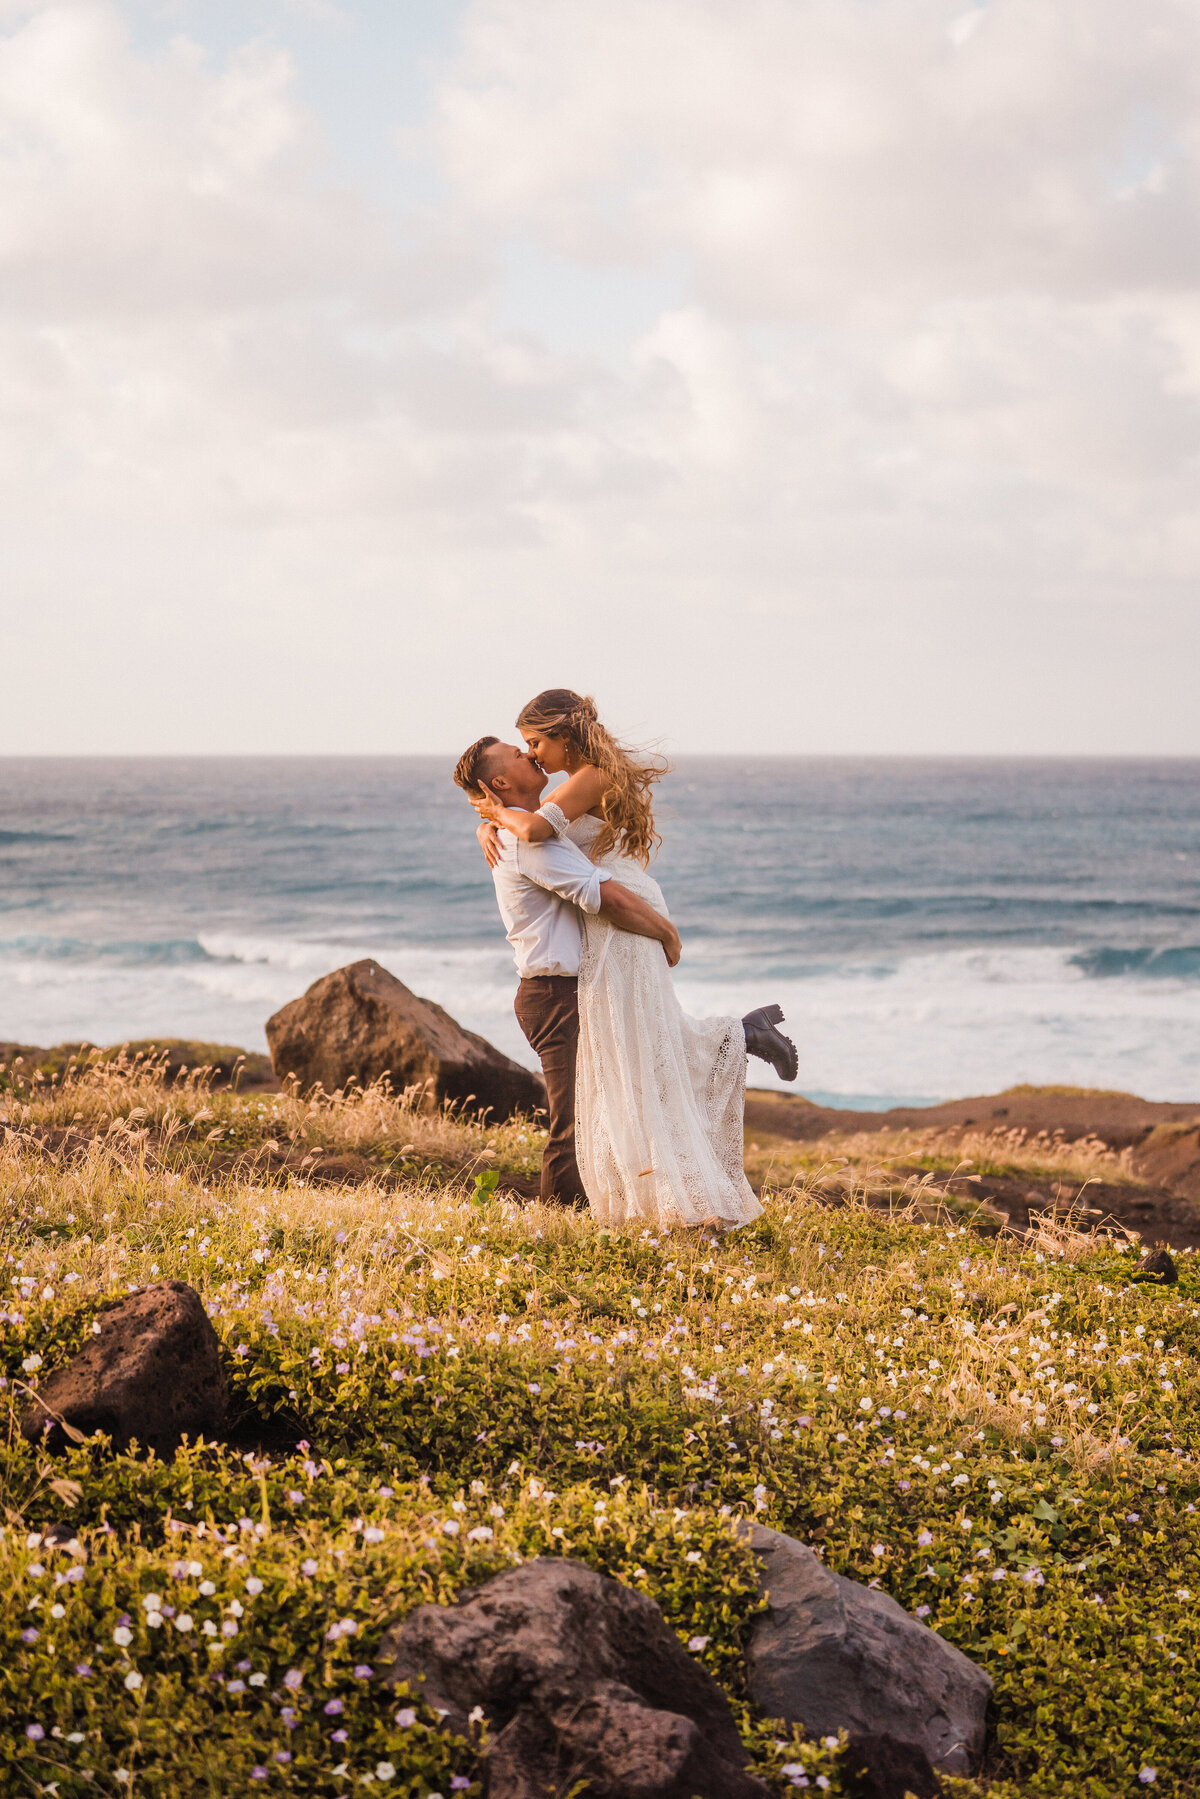 north-shore-elopement-hawaii-adventure-elopement-photographer-4